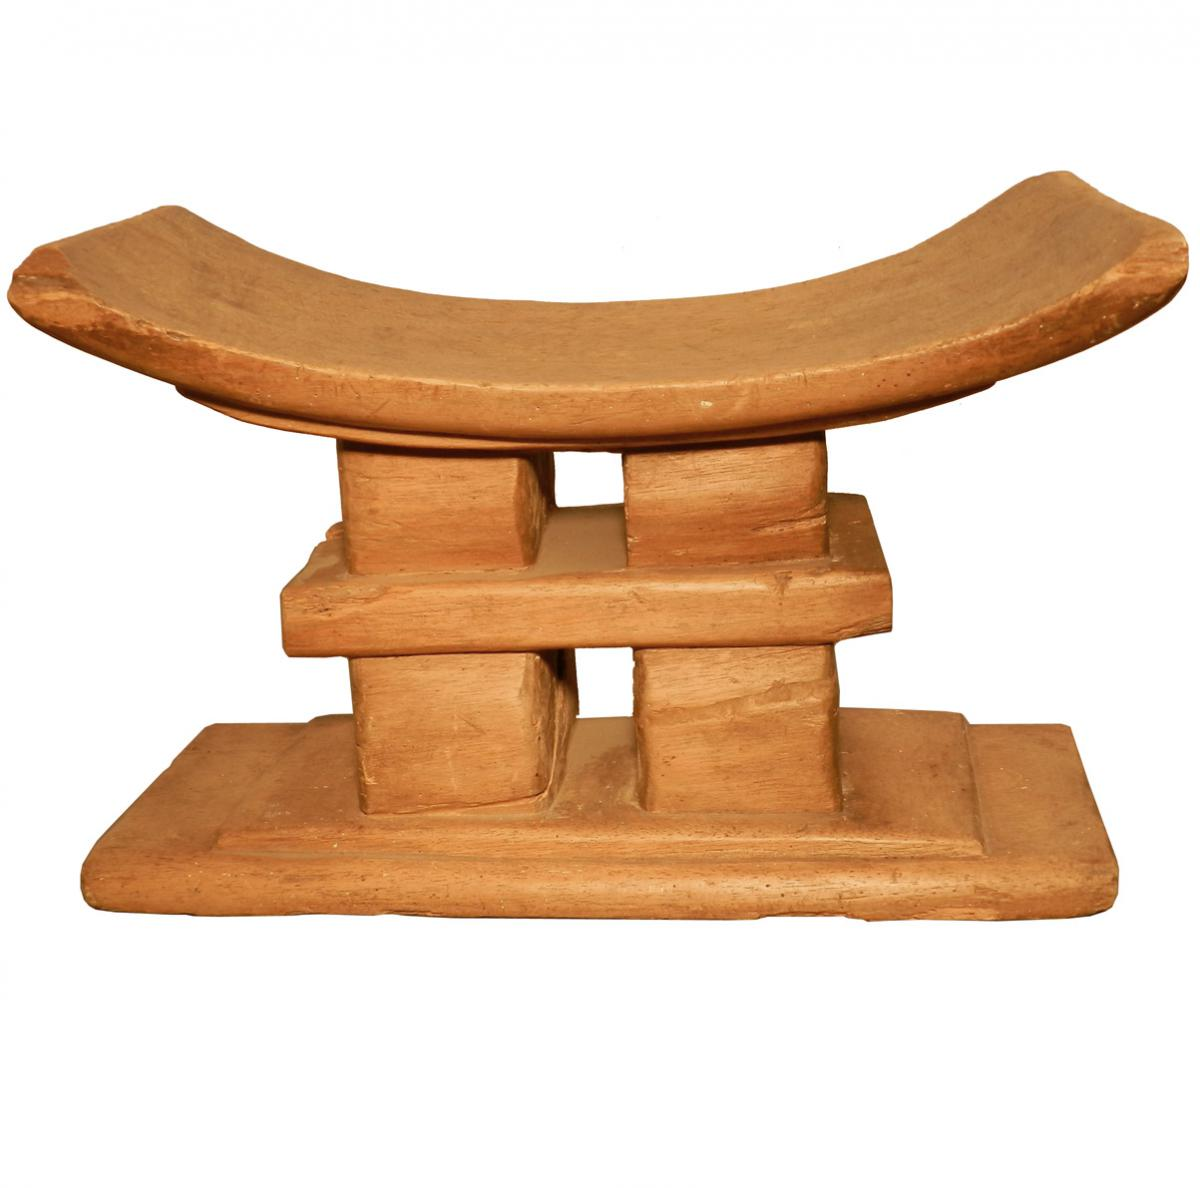 African Work, Old Carved Wooden Seat, Wear Of Use